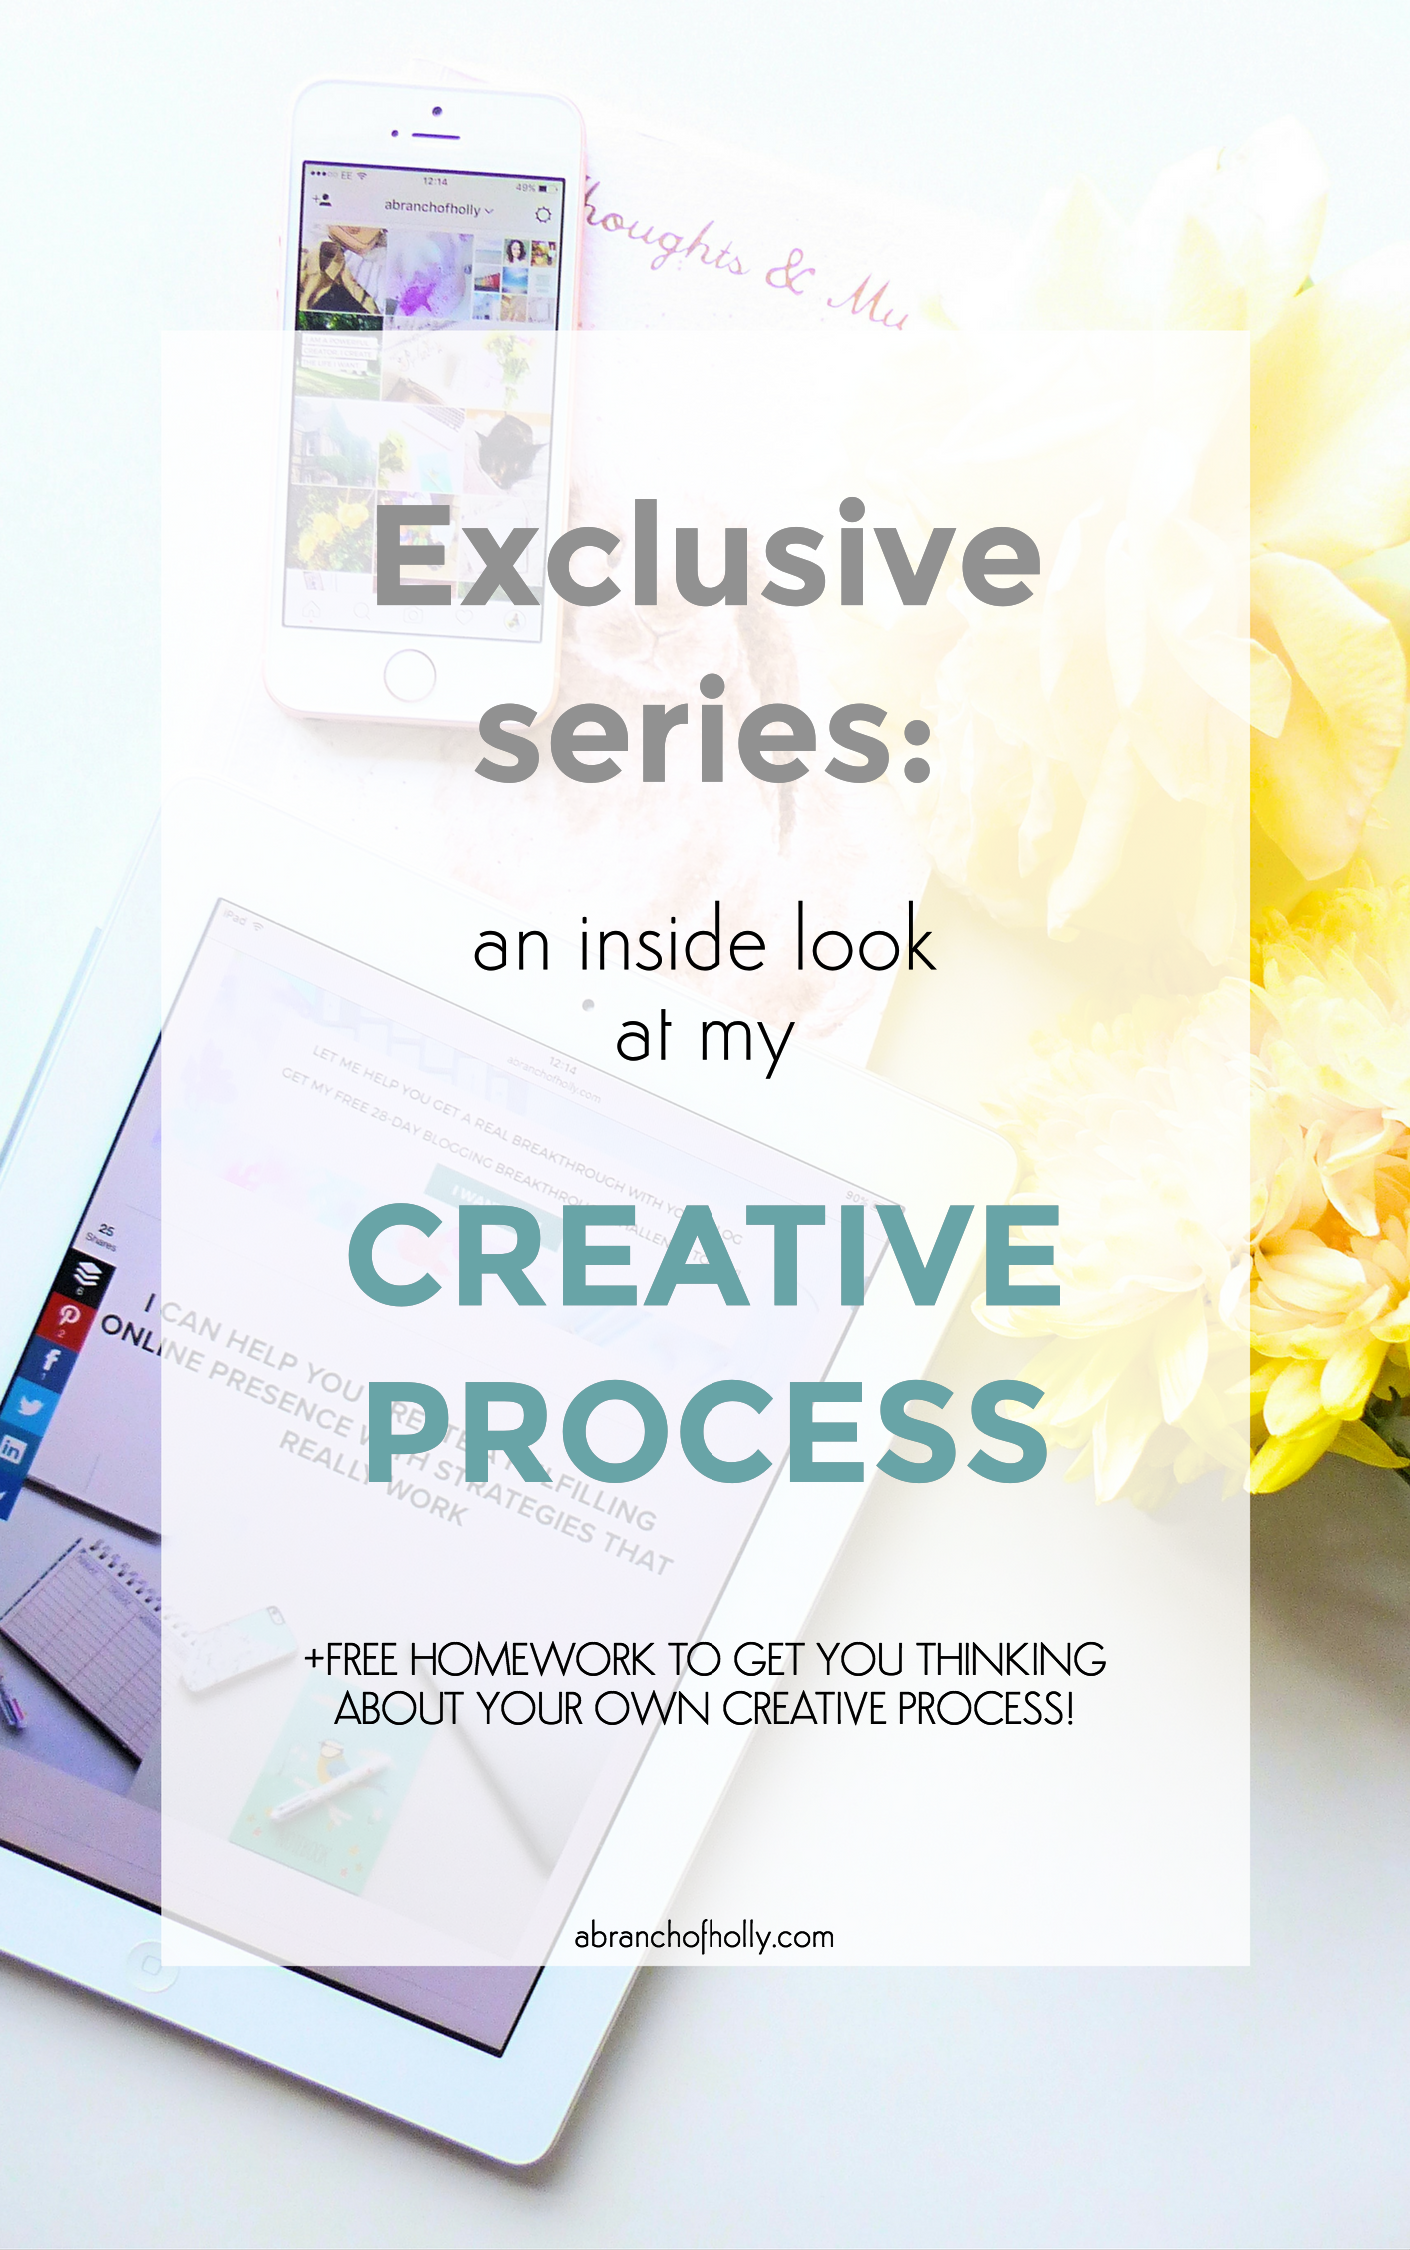 exclusive series: an inside look at my creative process